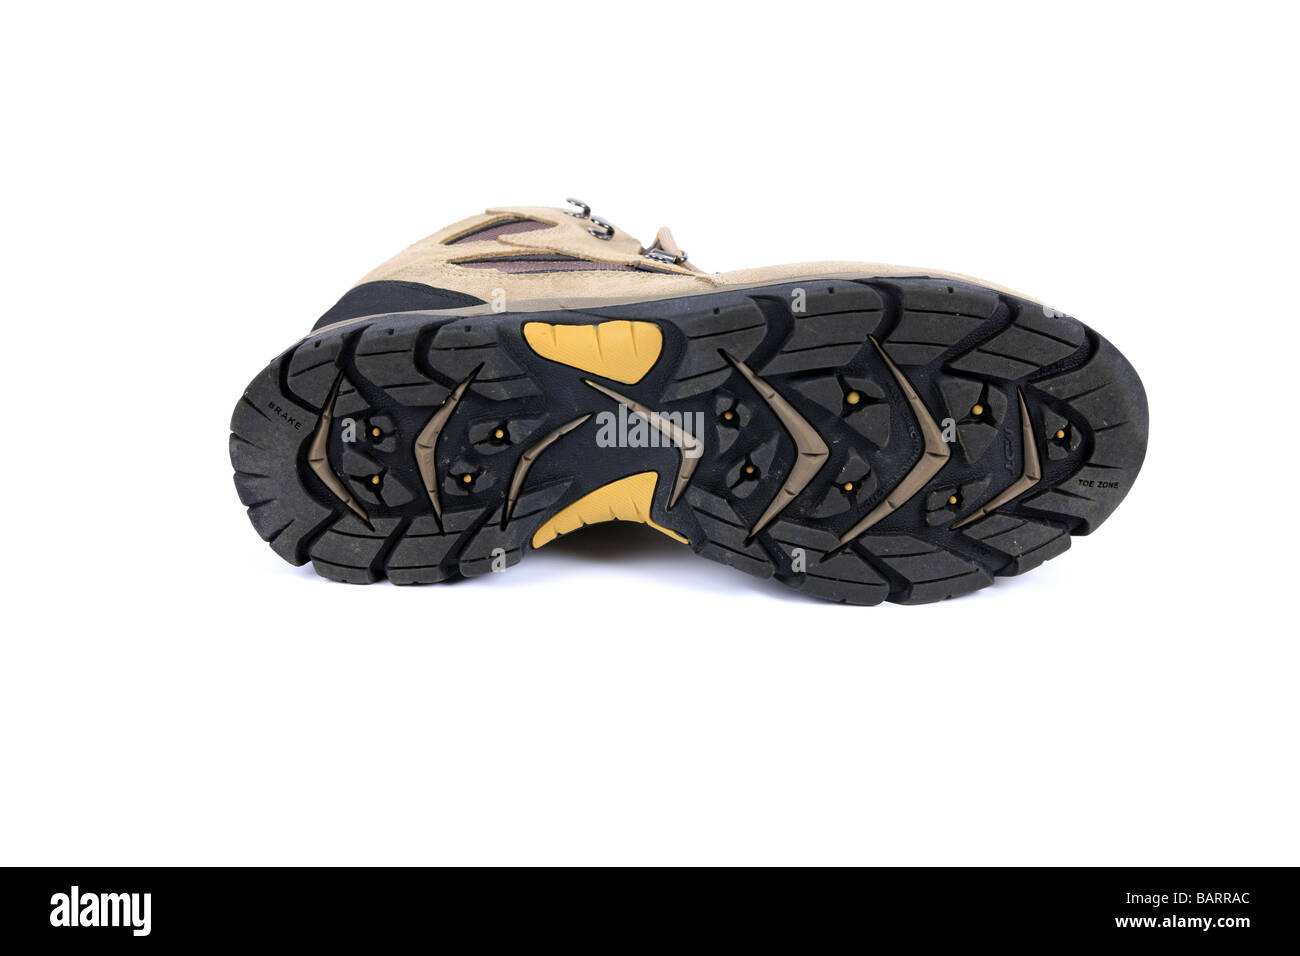 Bottom tread of a Man s tan suede Walking boot - Stock Image